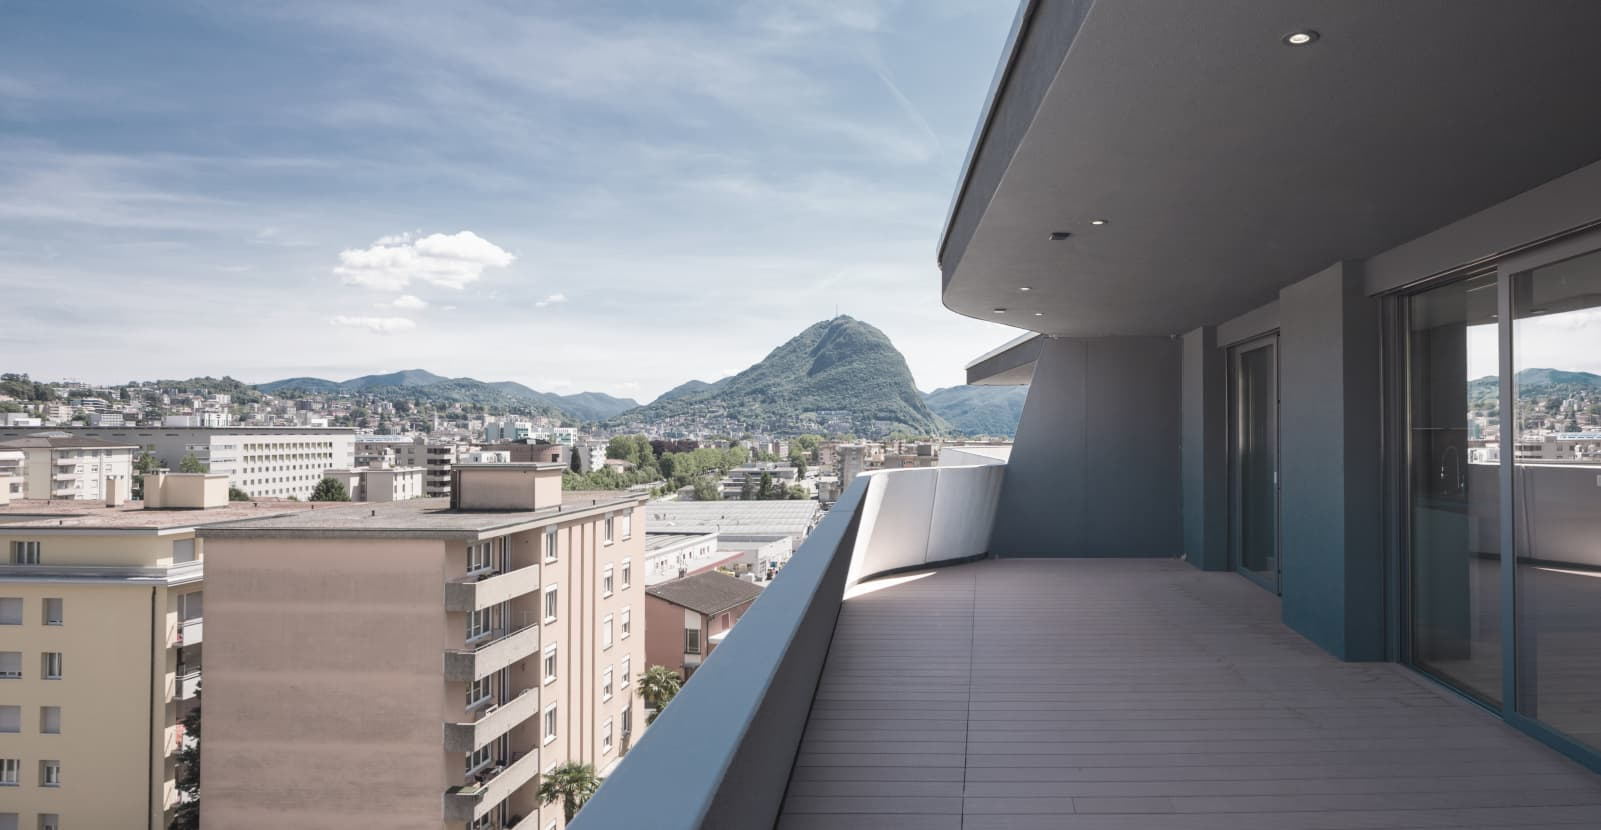 From the terrace of a tall building, you can see the rooftops of Lugano, with Monte San Salvatore in the background.